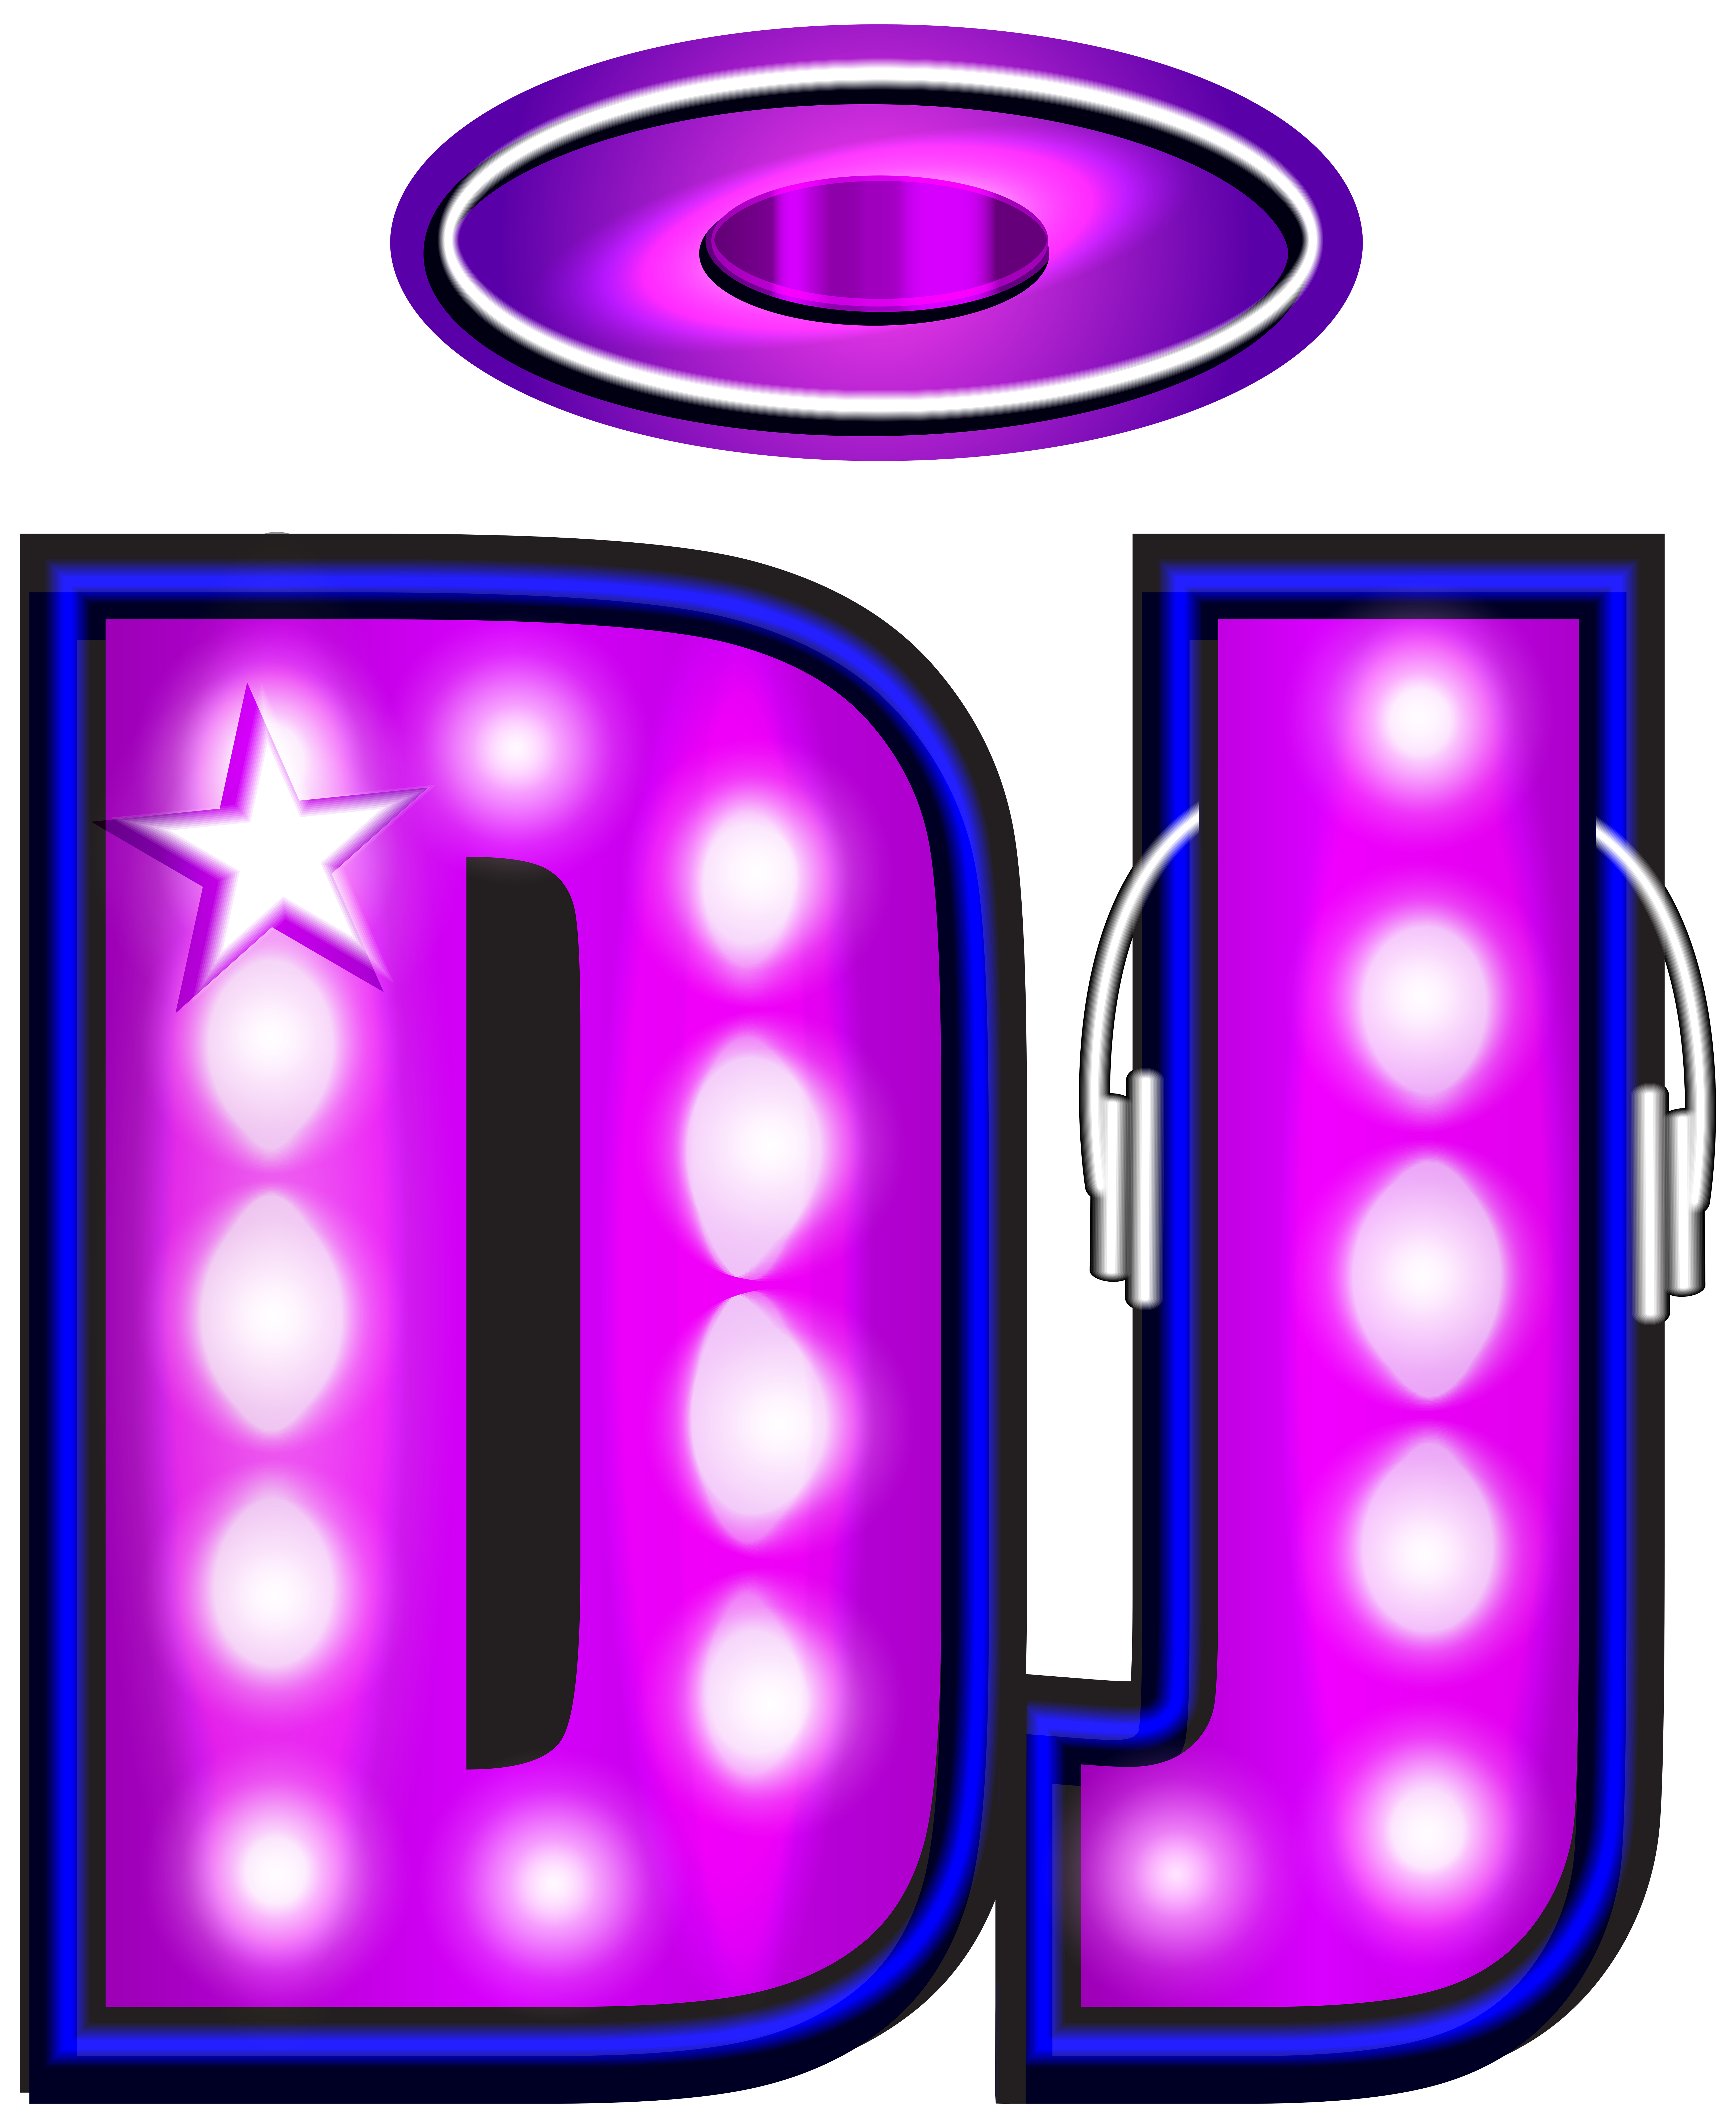 Neon clip art image. Dj png clipart library download